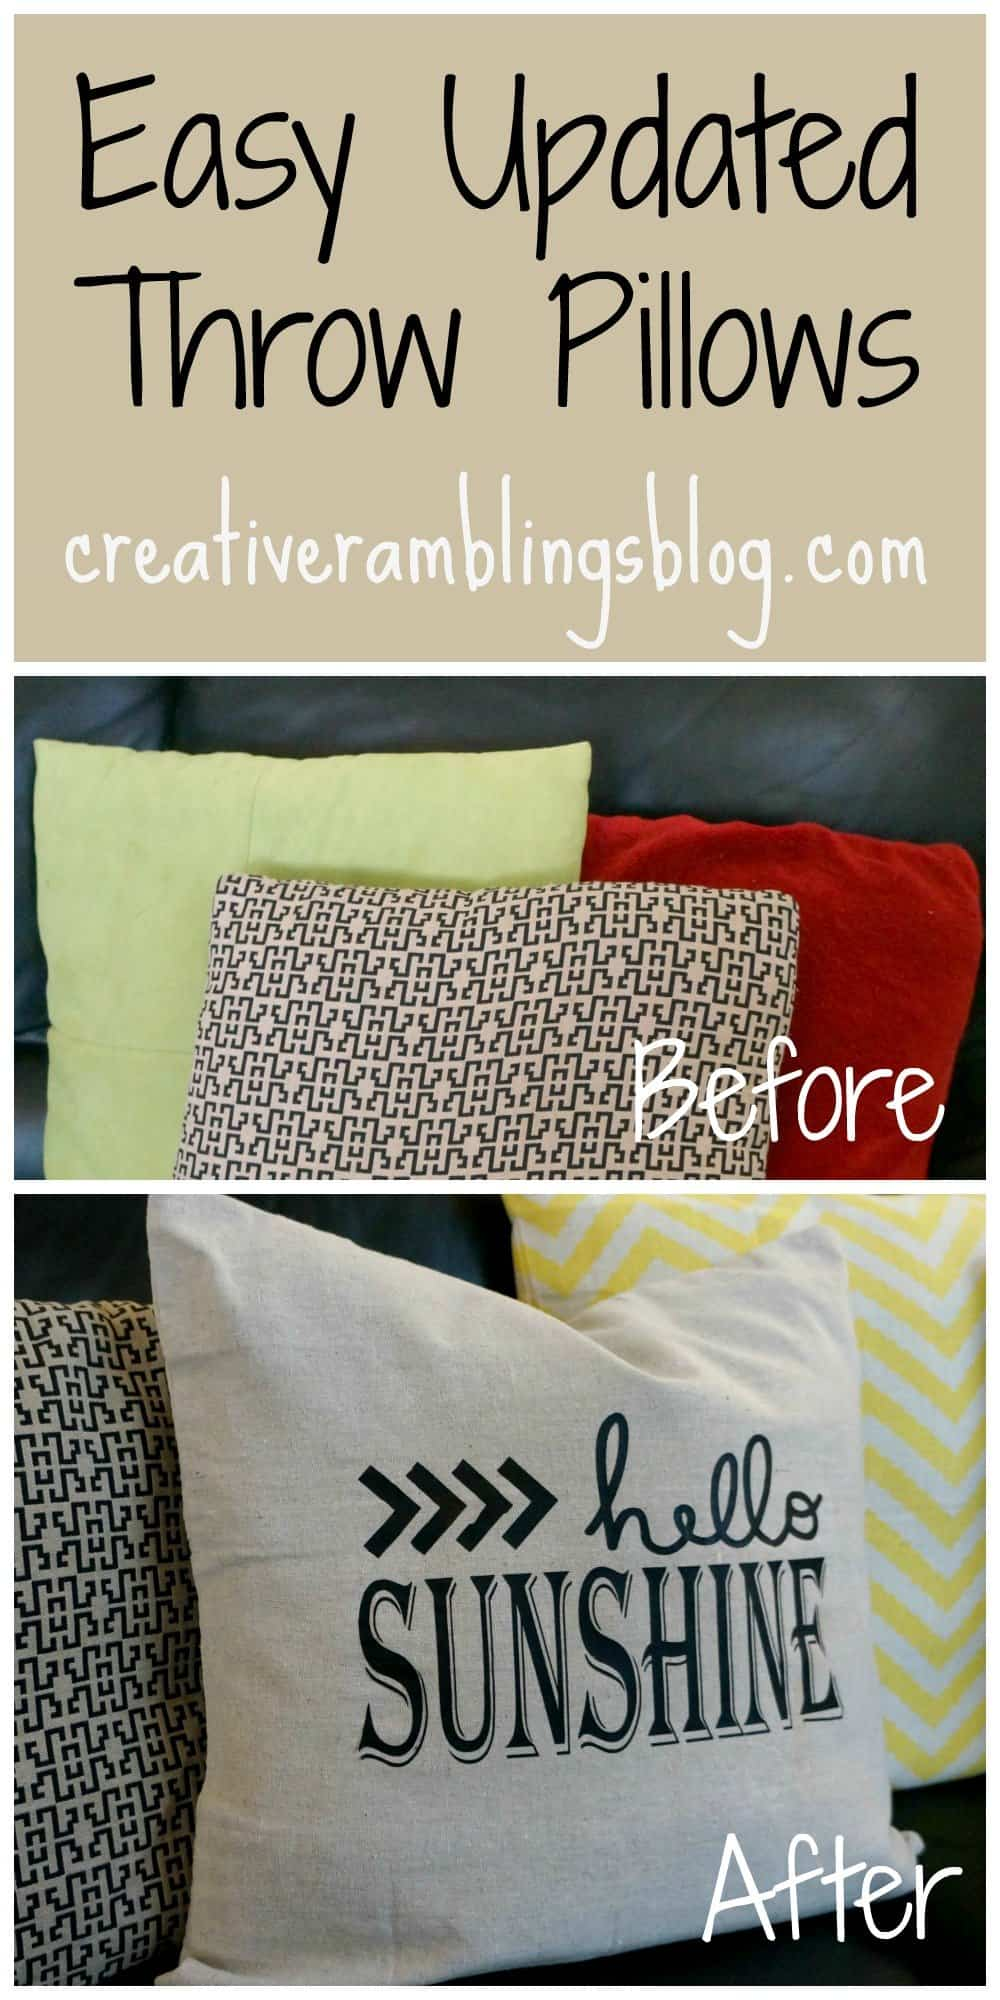 Easy updated throw pillows before and after